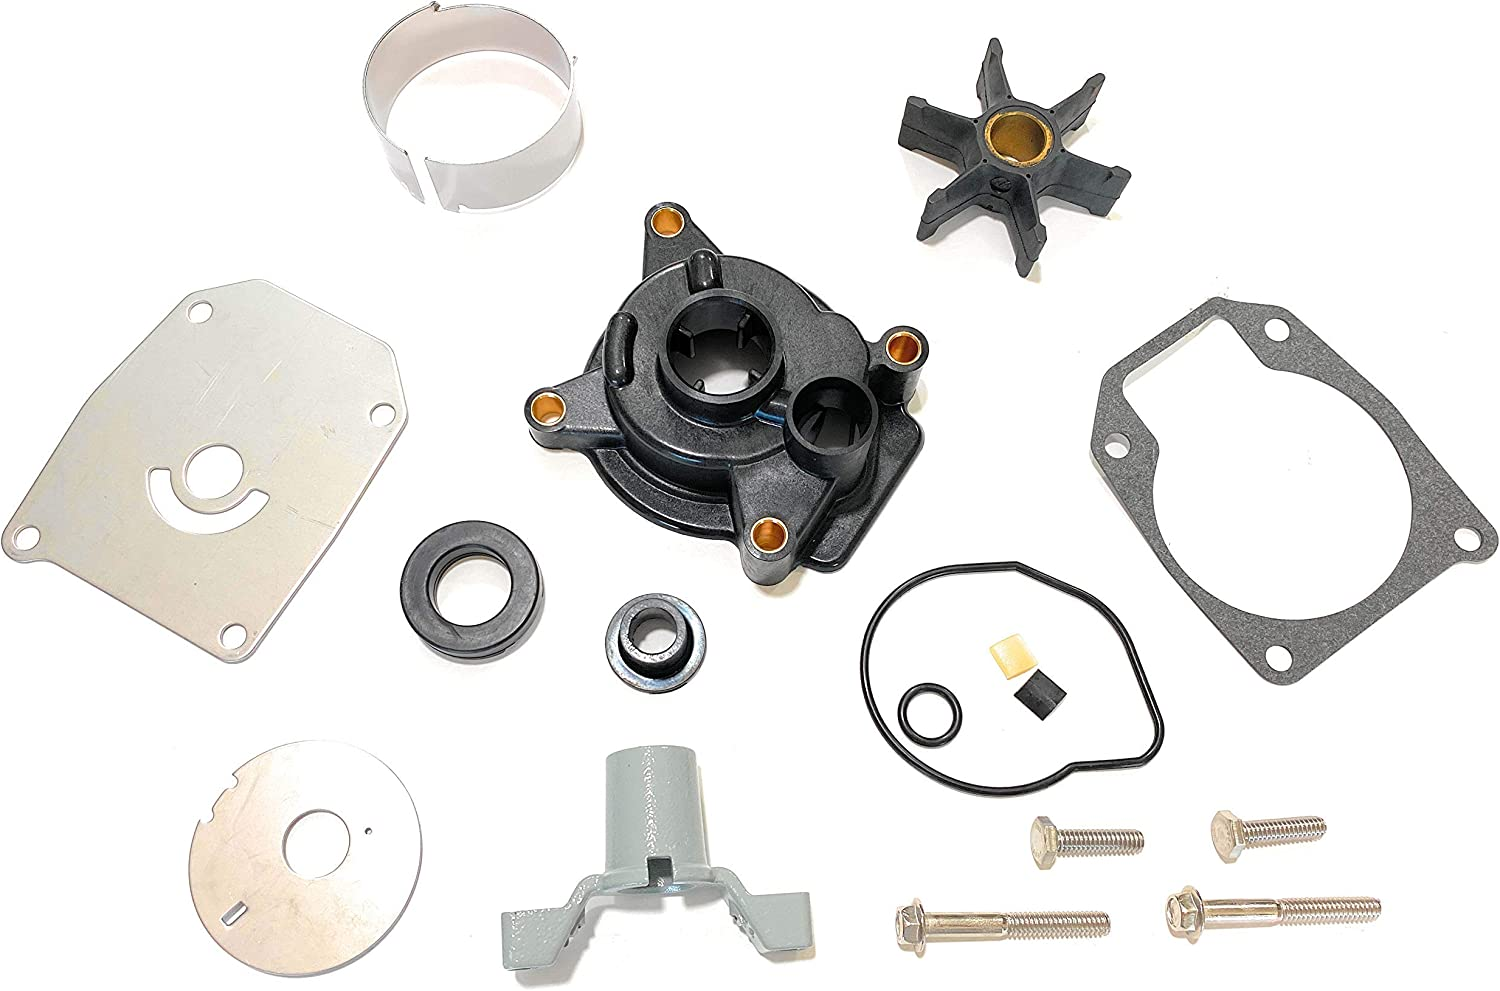 V G Parts Water Pump Impeller Kit for Johnson Evinrude 40-60 HP 1984 1985 1986 1987 1988 Replaces Sierra 18-3399, 439077 0439077